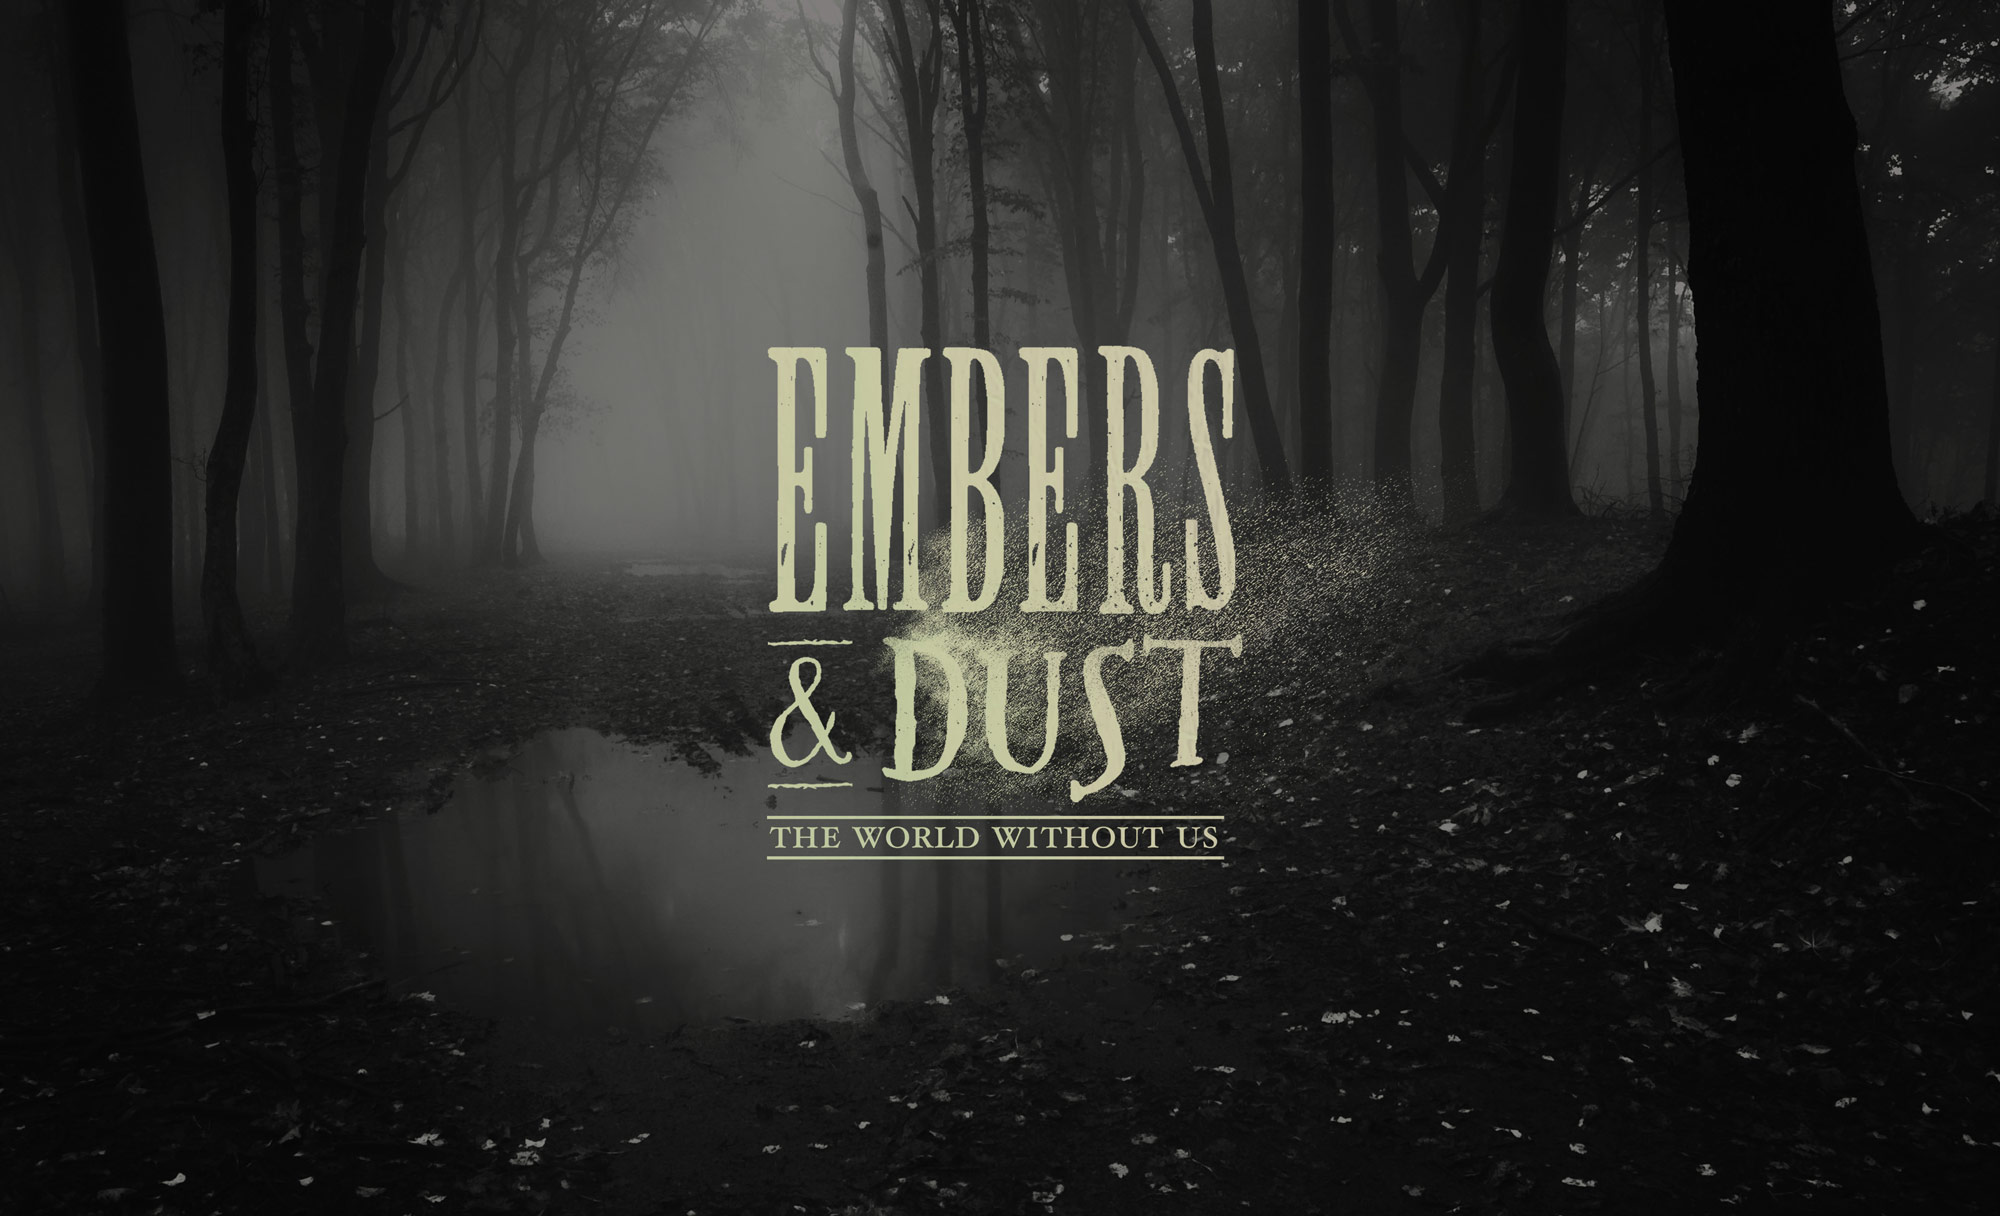 Embers & Dust Treatment [click to view]